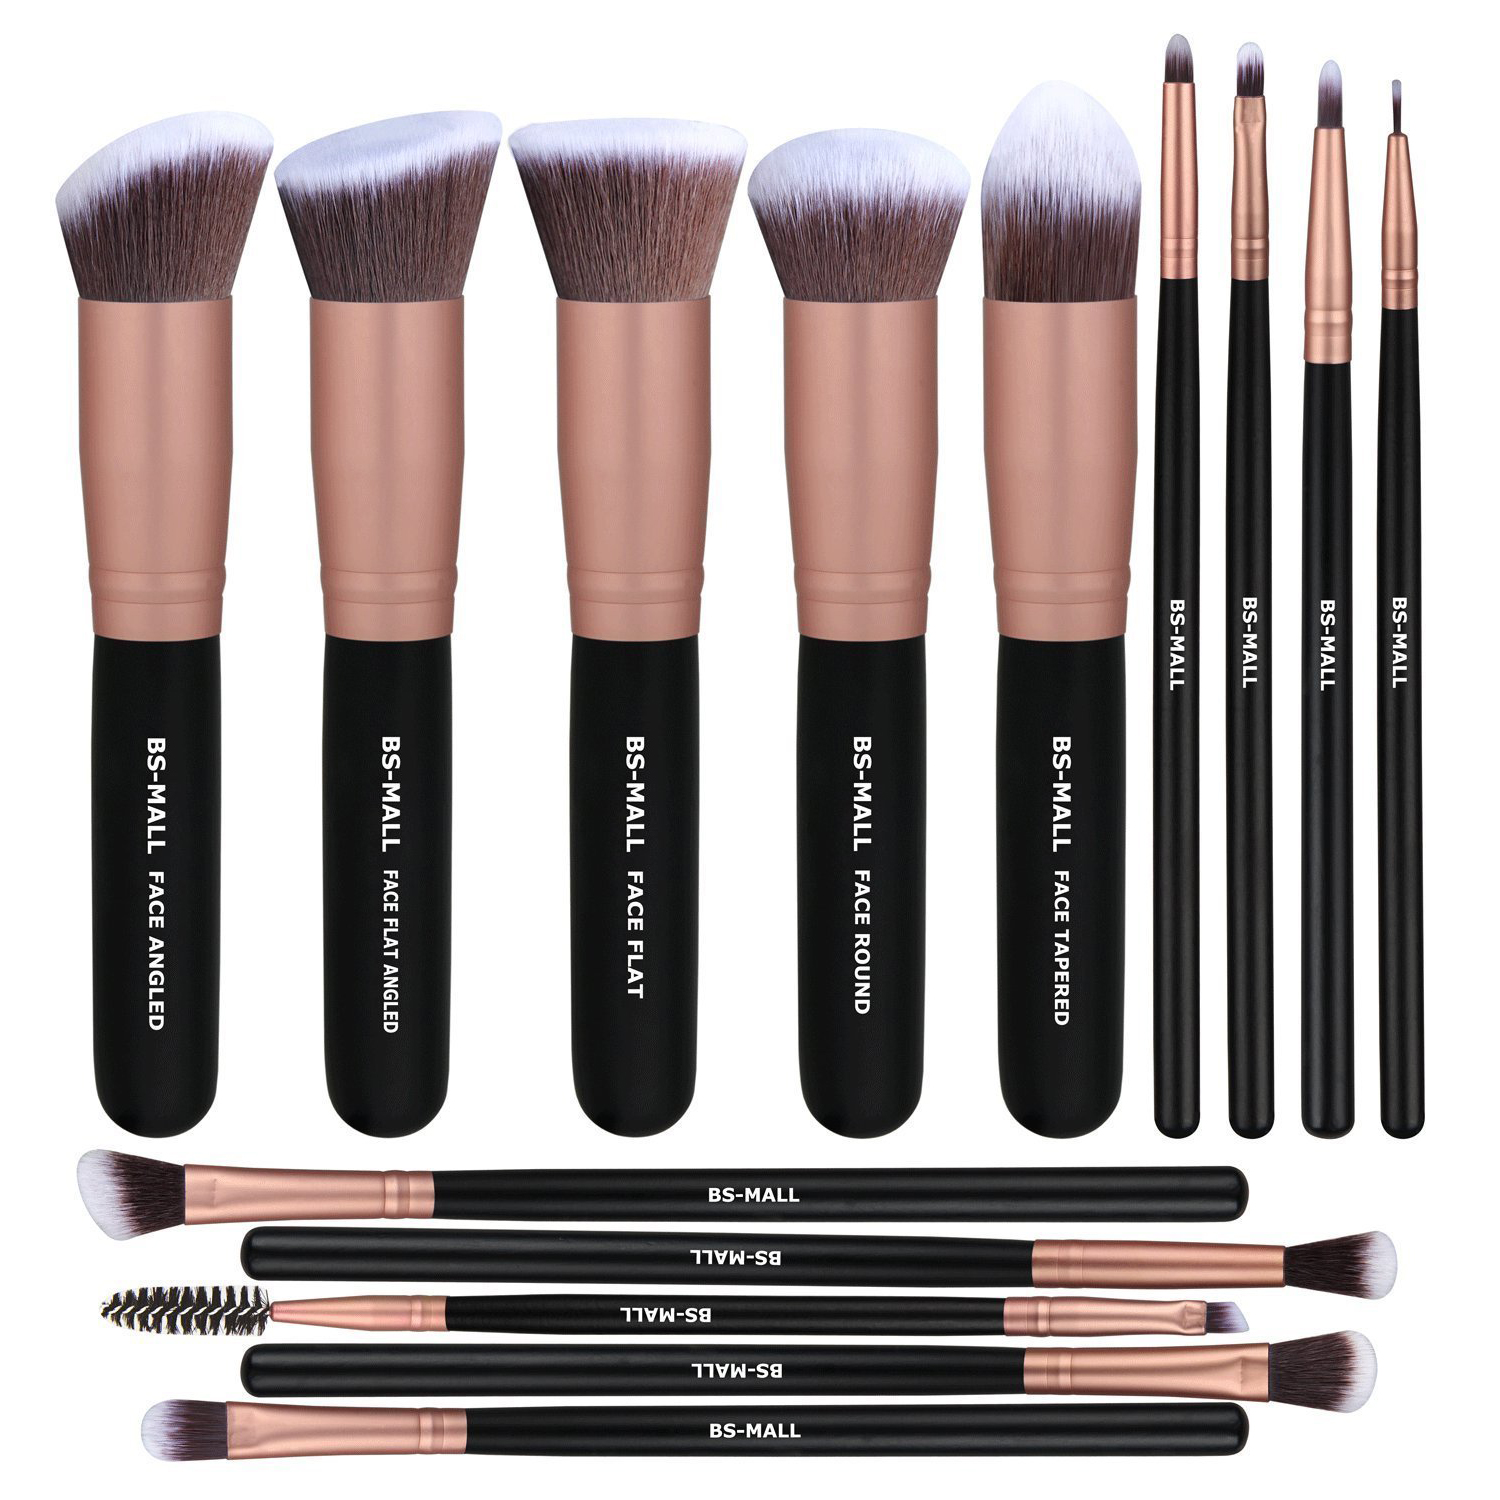 makeup brushes premium synthetic foundation powder concealers eye shadows